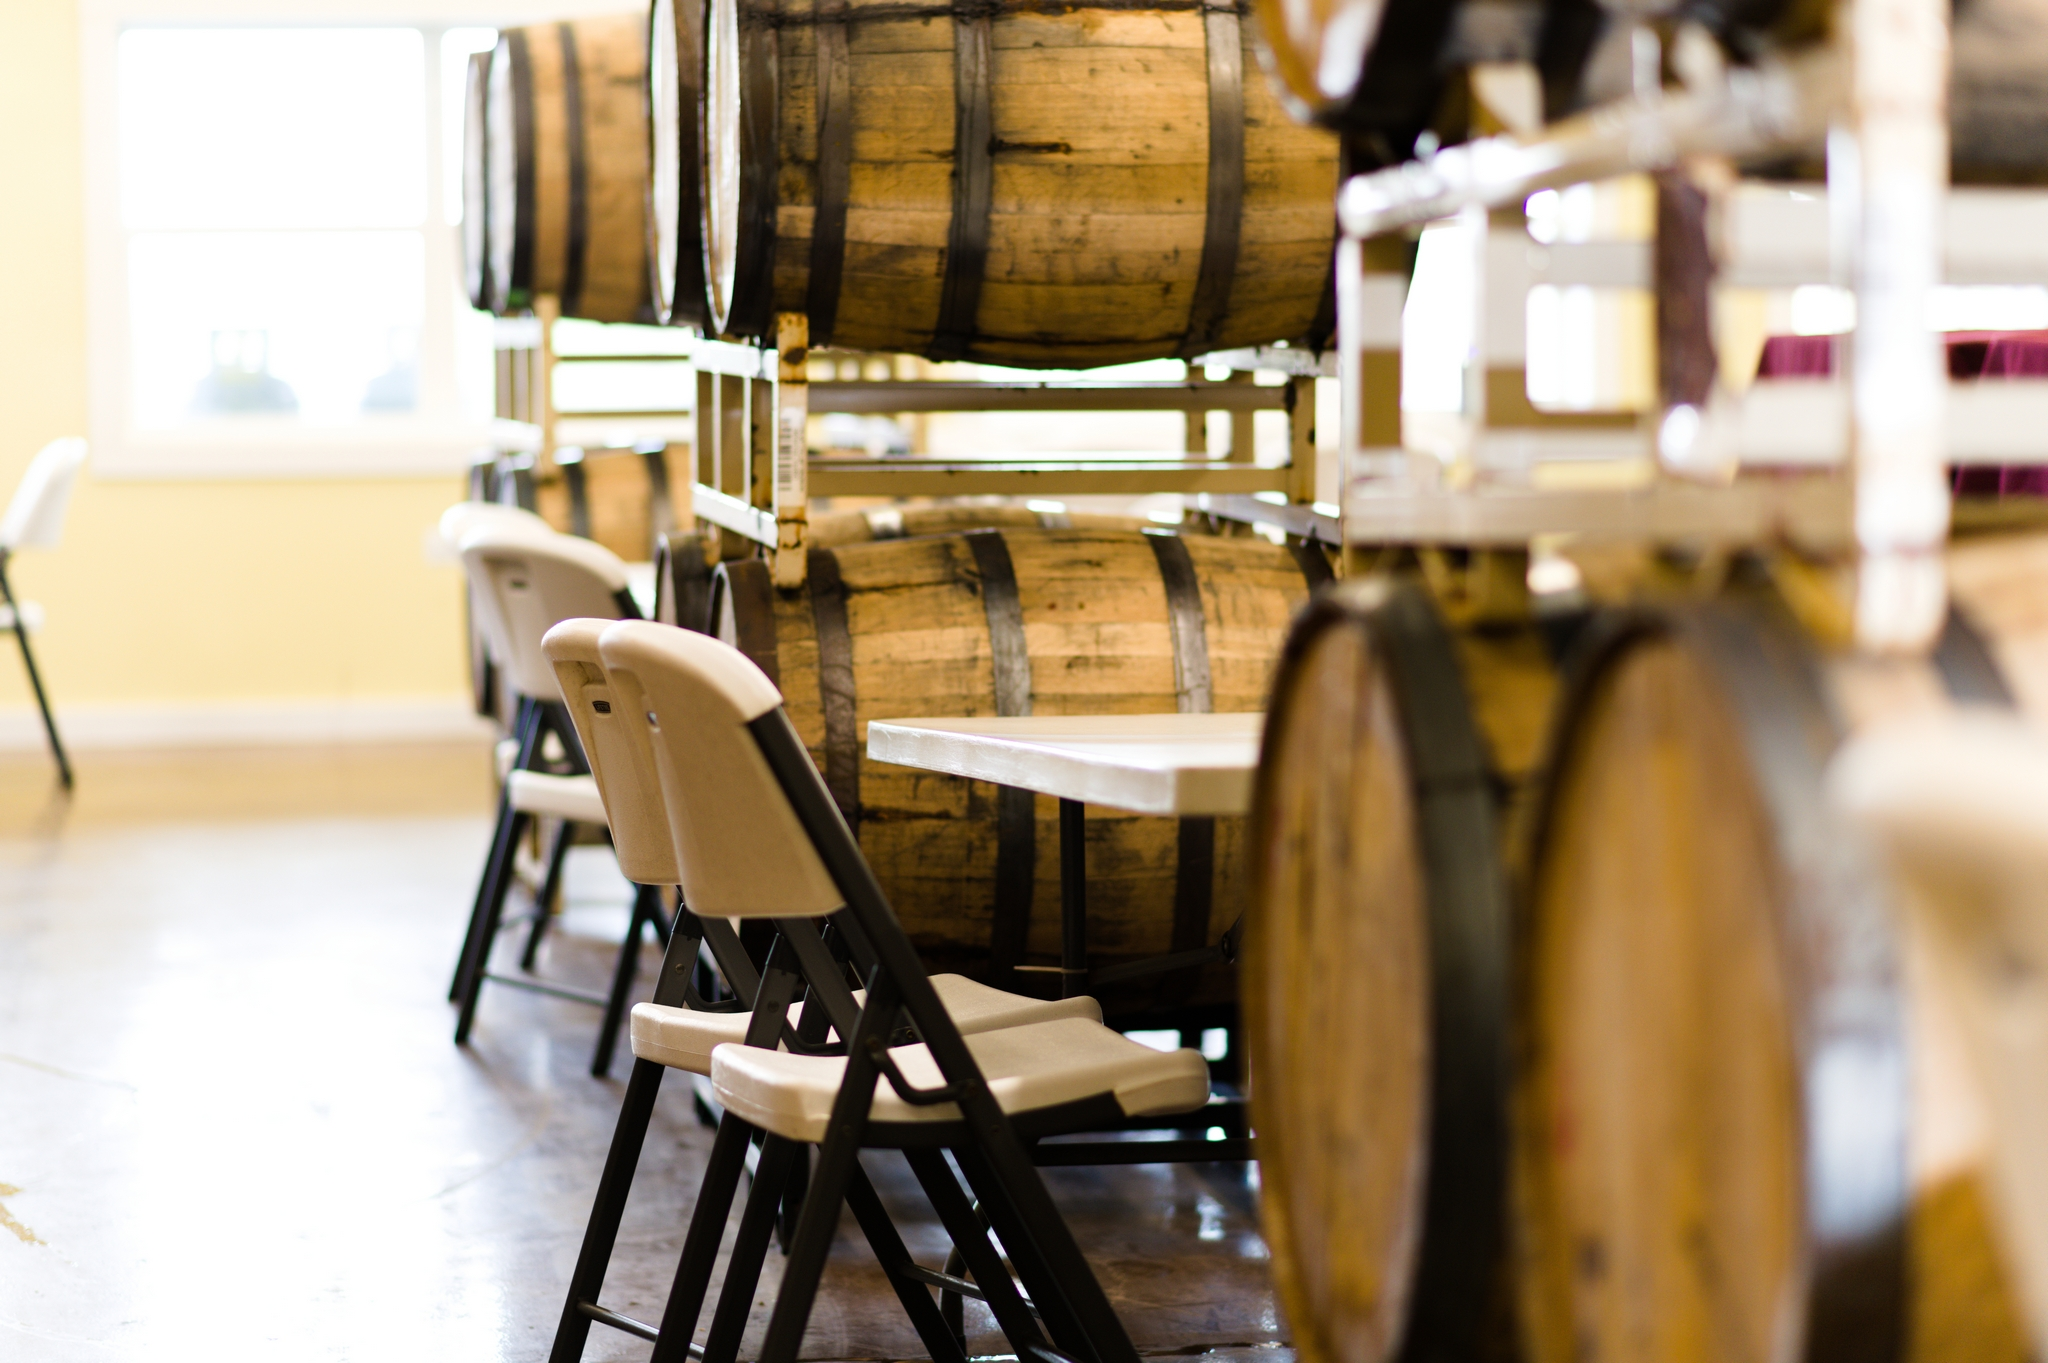 Wine barrels with table and chairs